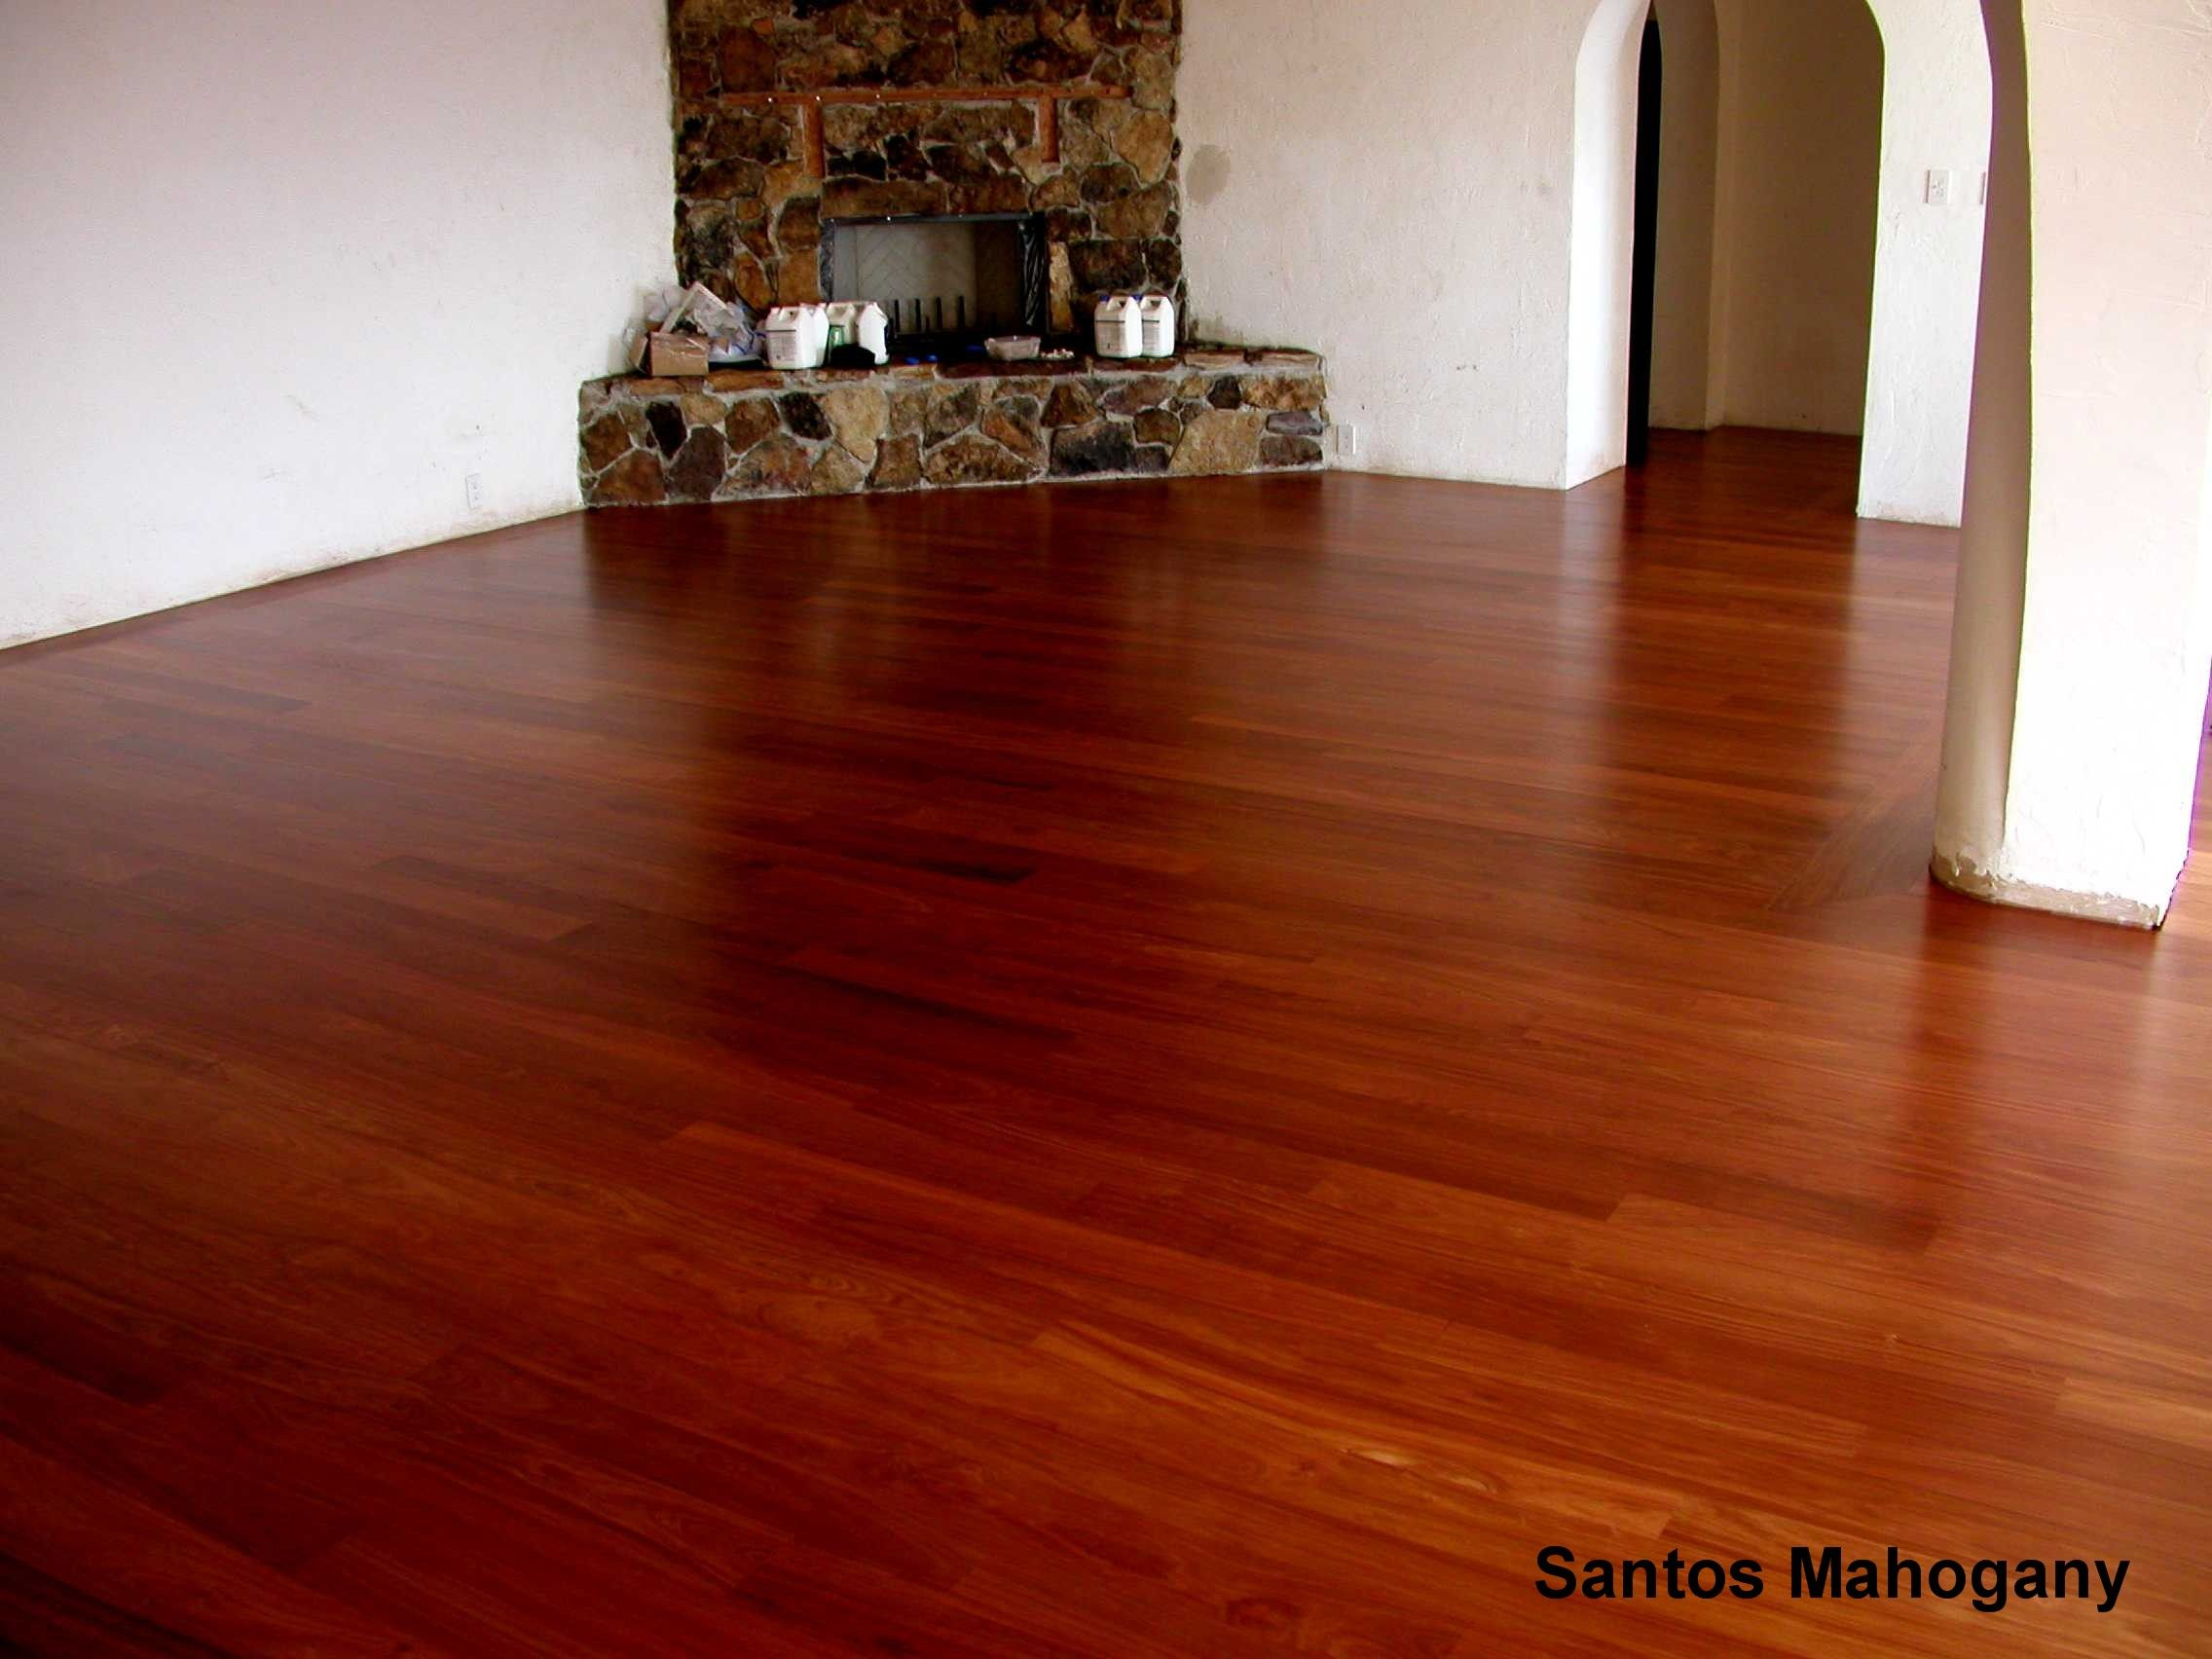 glueless captivating mahogany trafficmaster in flooring laminate home lowes marriefield floors decorating for fascinating sale ideas wholesale discount using